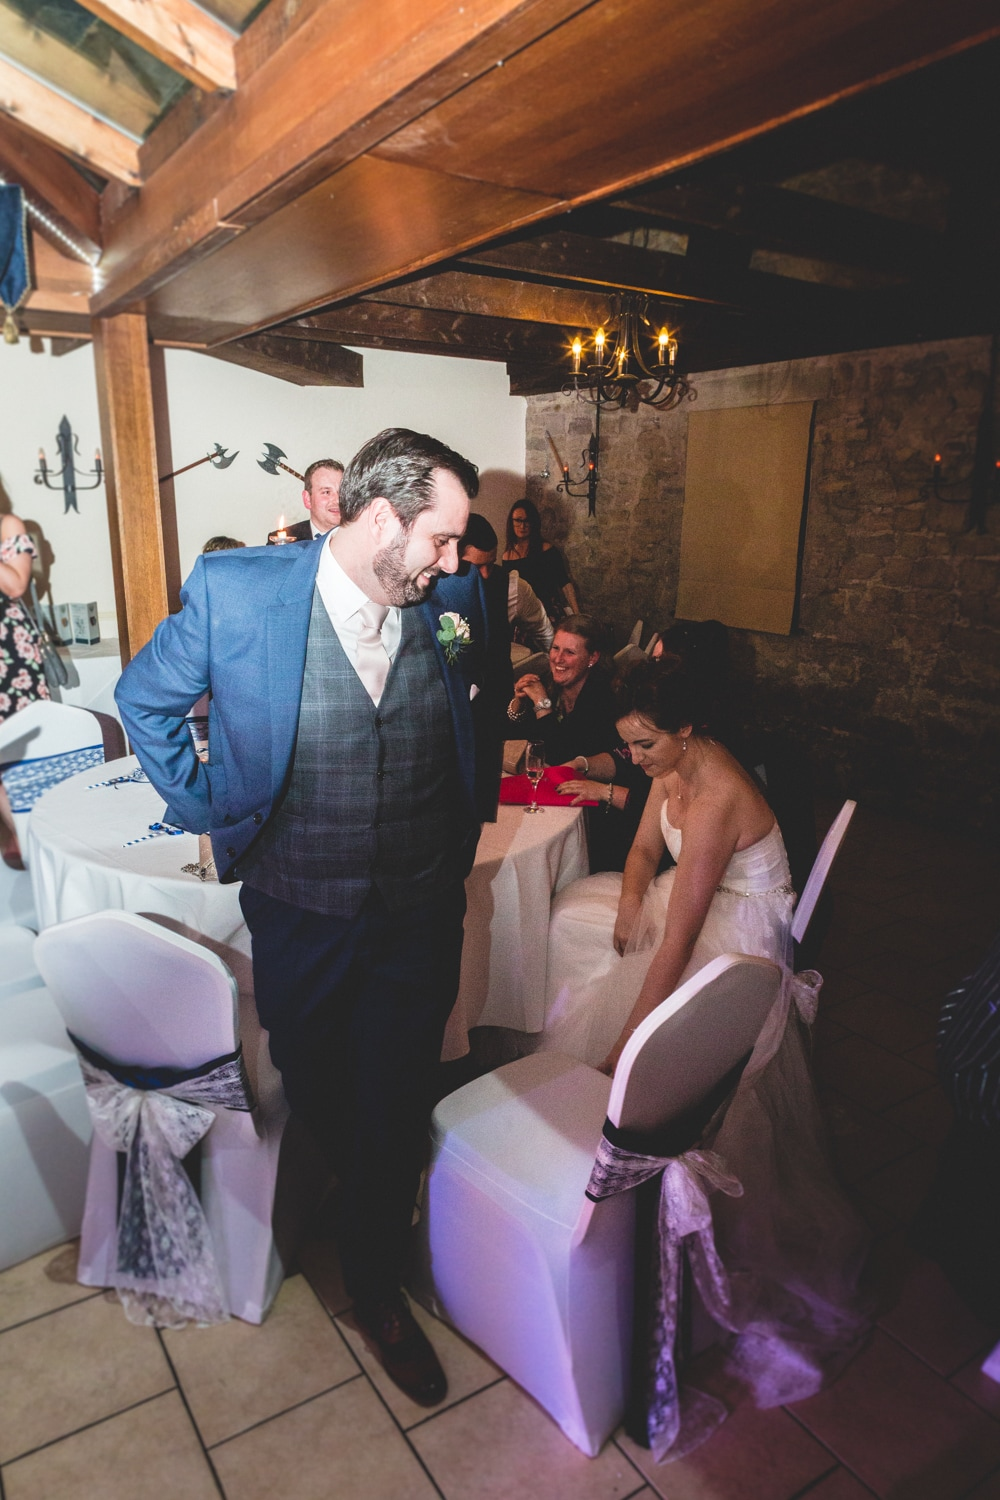 Time for the first dance - Wedding photography by Yorkshire photographer, Mat Robinson